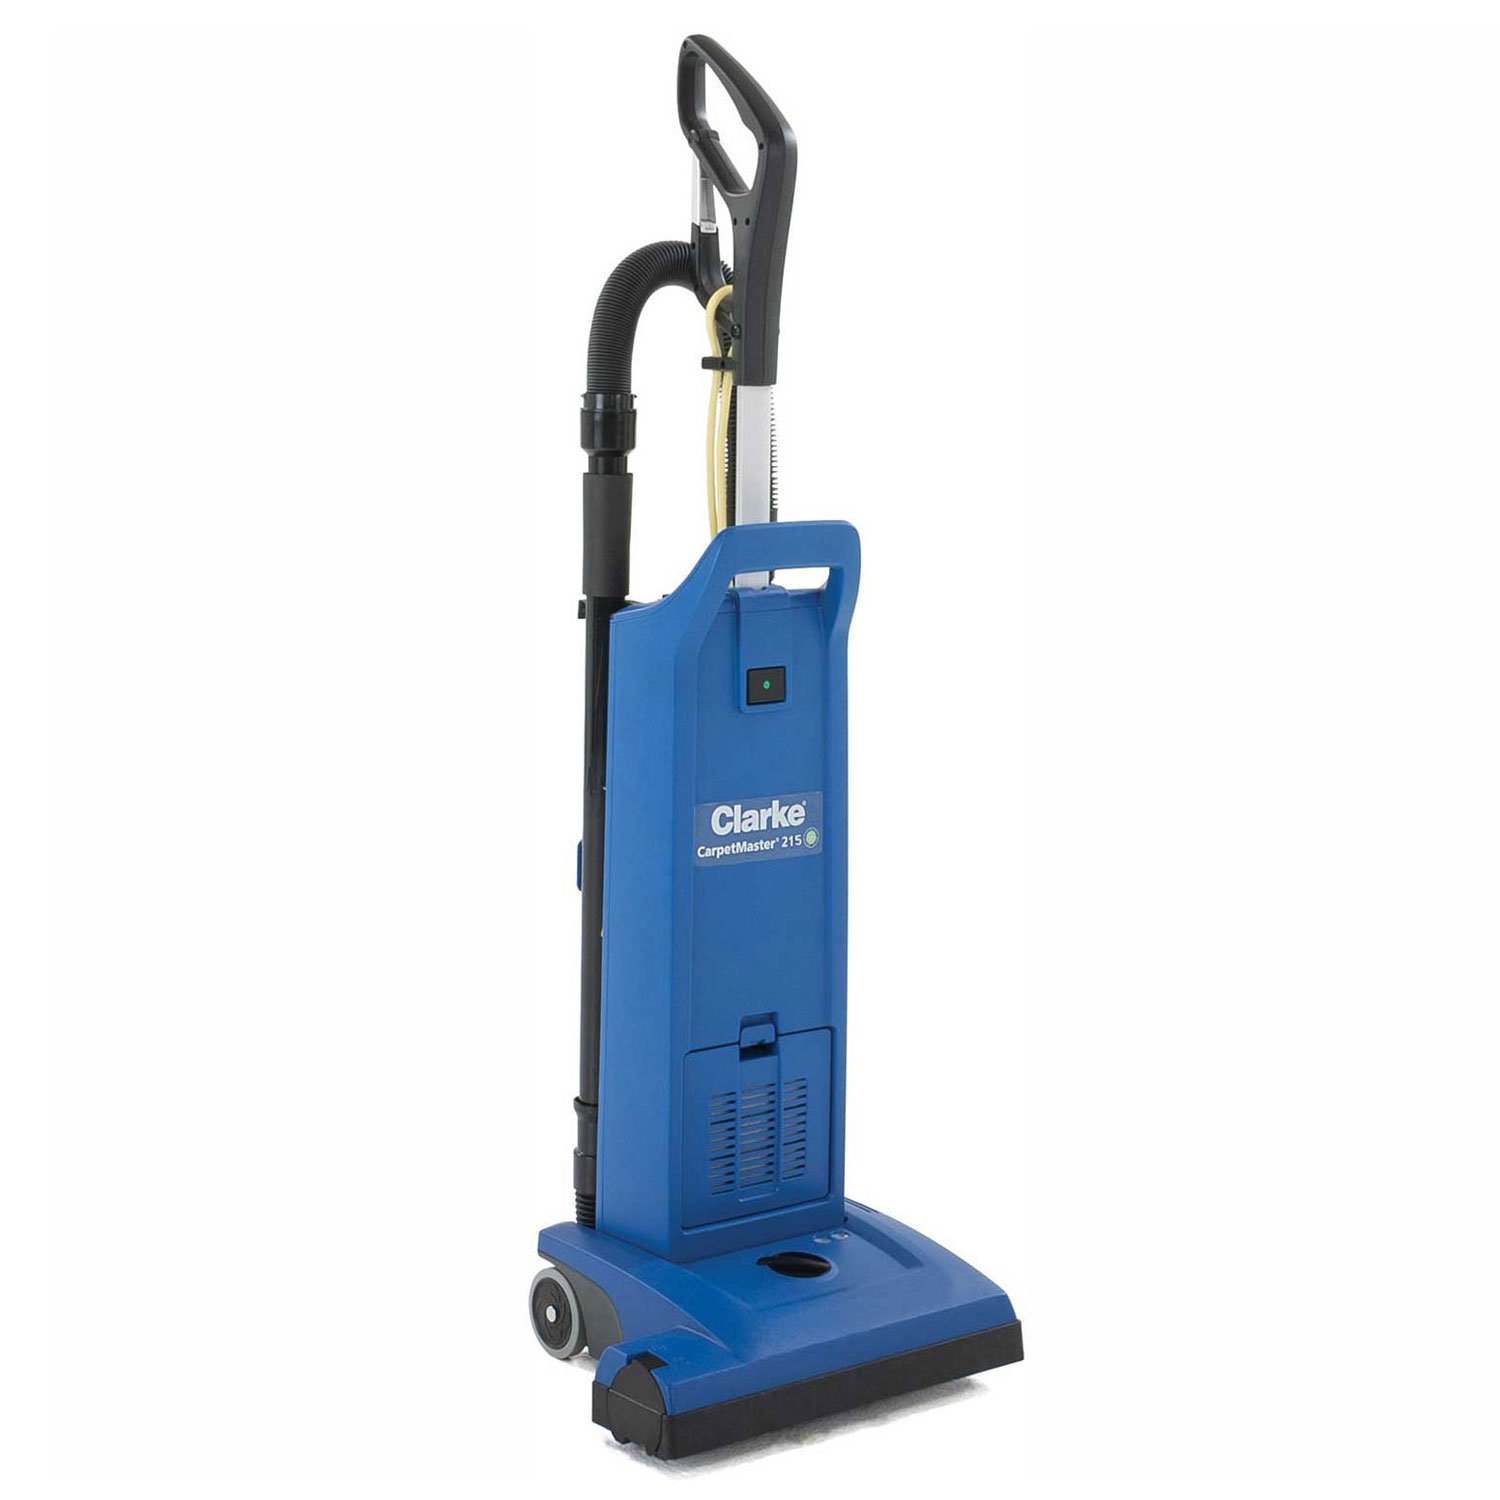 Amazon.com: Clarke carpetmaster 215 Dual Motor Commercial ...